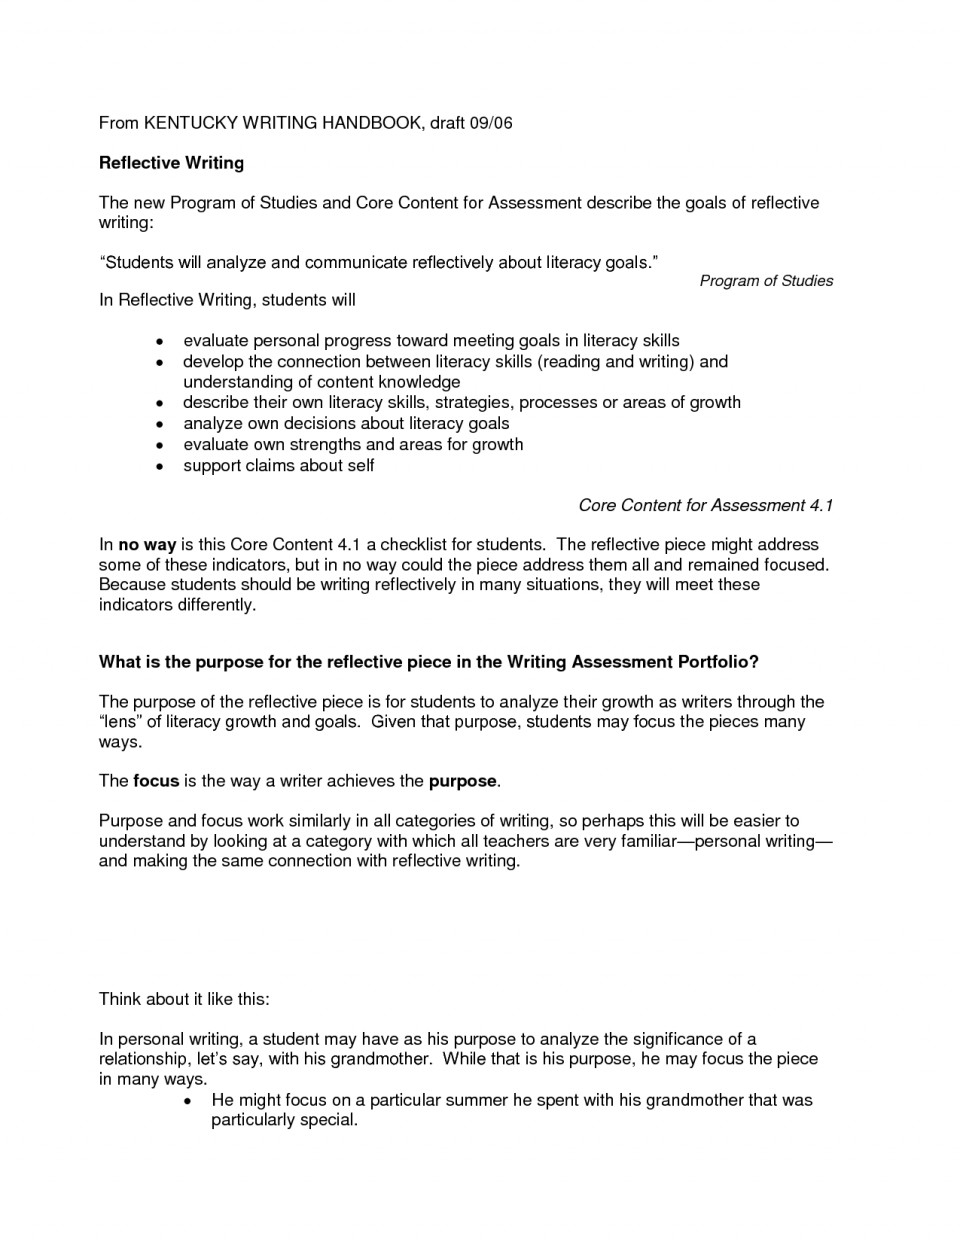 002 reflective essay definition samples self reflections critical means and literary for of kids